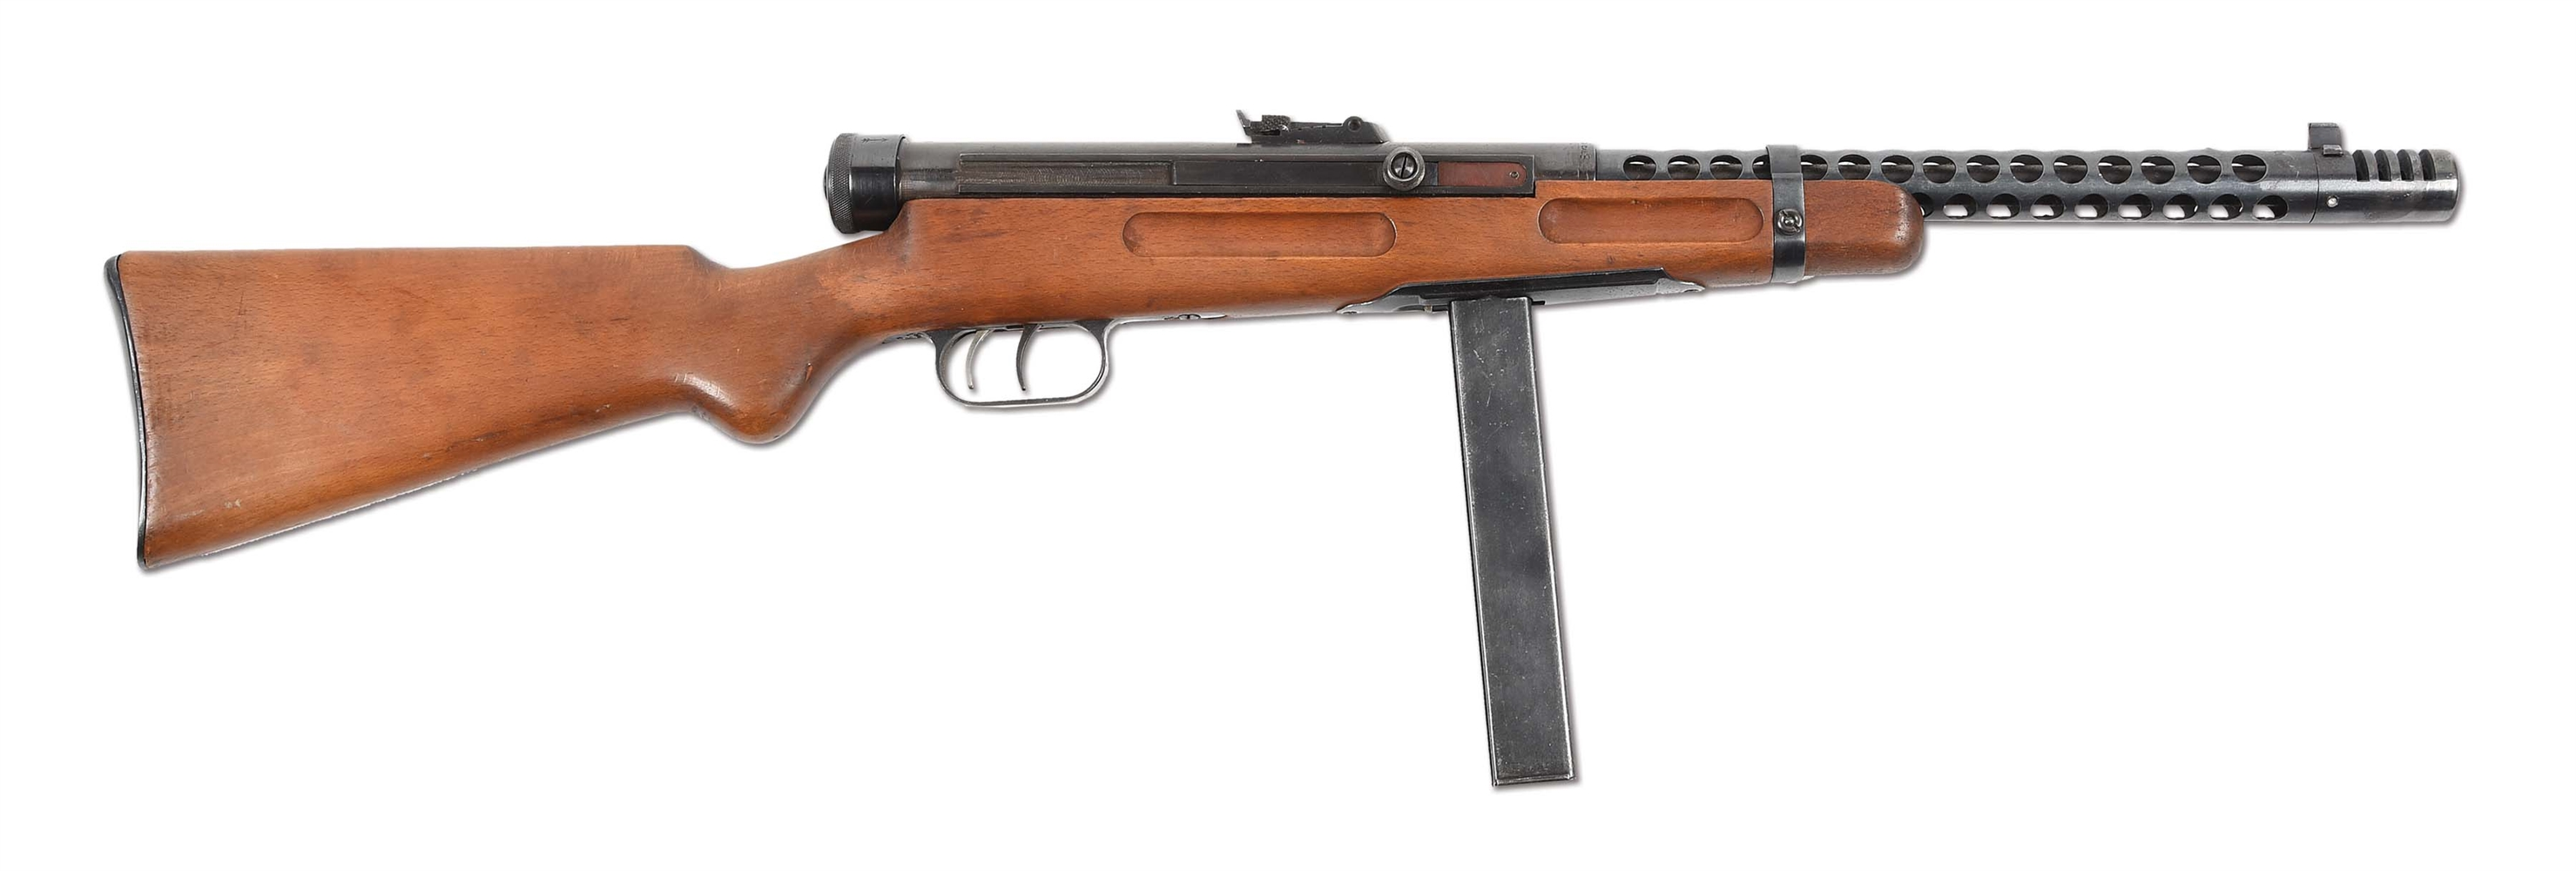 (N) EXCEPTIONALLY FINE CONDITION BERETTA MODEL 38A MACHINE GUN AMNESTY REGISTERED BY BARRY GOLDWATER (CURIO AND RELIC).